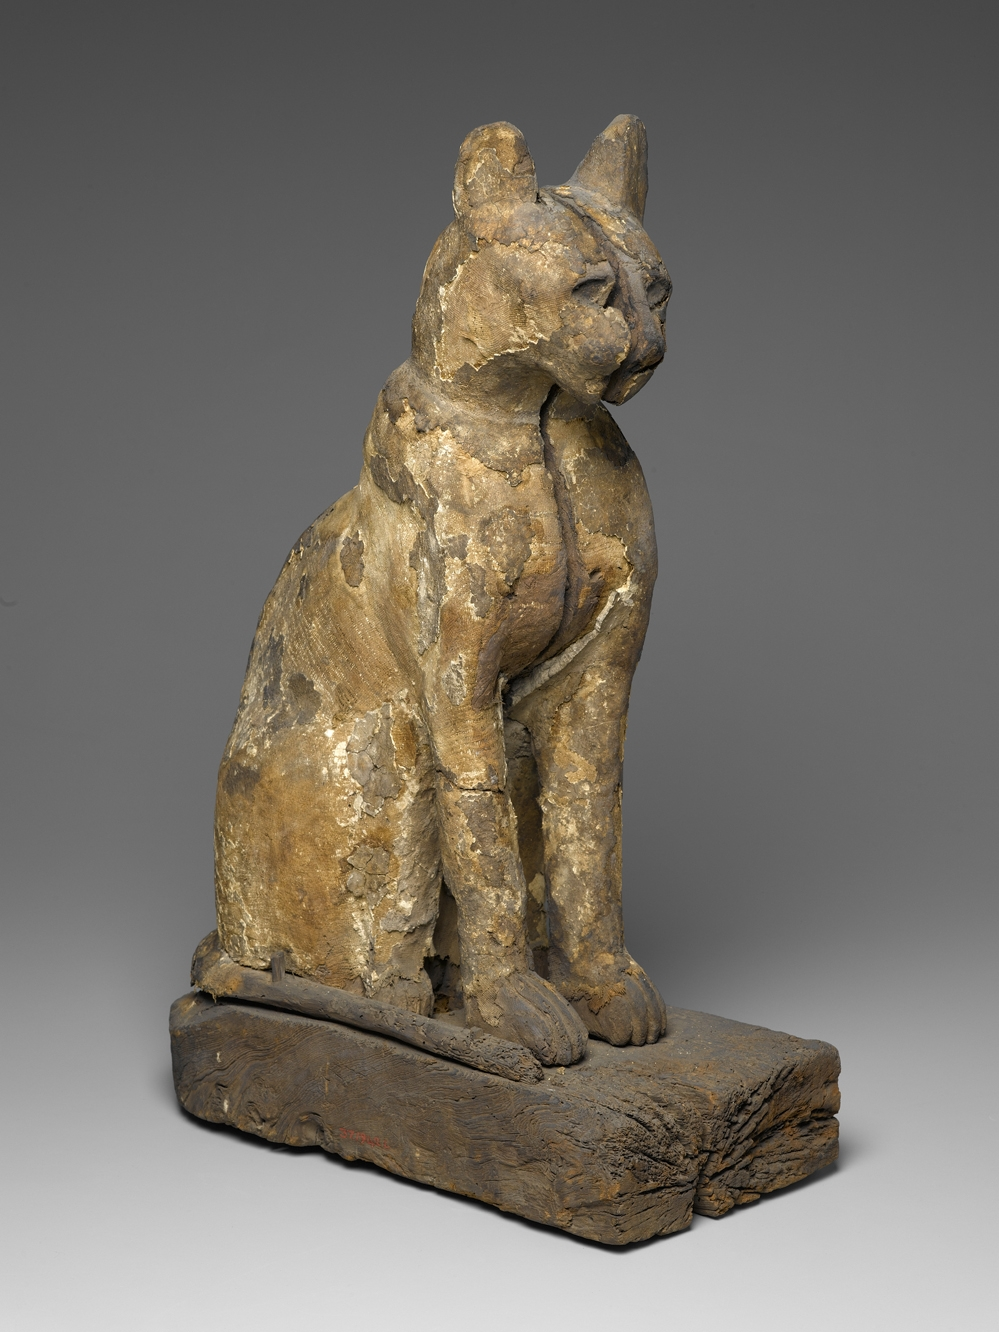 Cat Coffin with Mummy. From Egypt. Late Period, 664-332 B.C.E. Wood, gesso, linen, 21 1/4 x 7 1/16 x 14 3/16 in. (54 x 18 x 36.1 cm). Brooklyn Museum; Charles Edwin Wilbour Fund, 37.1942E